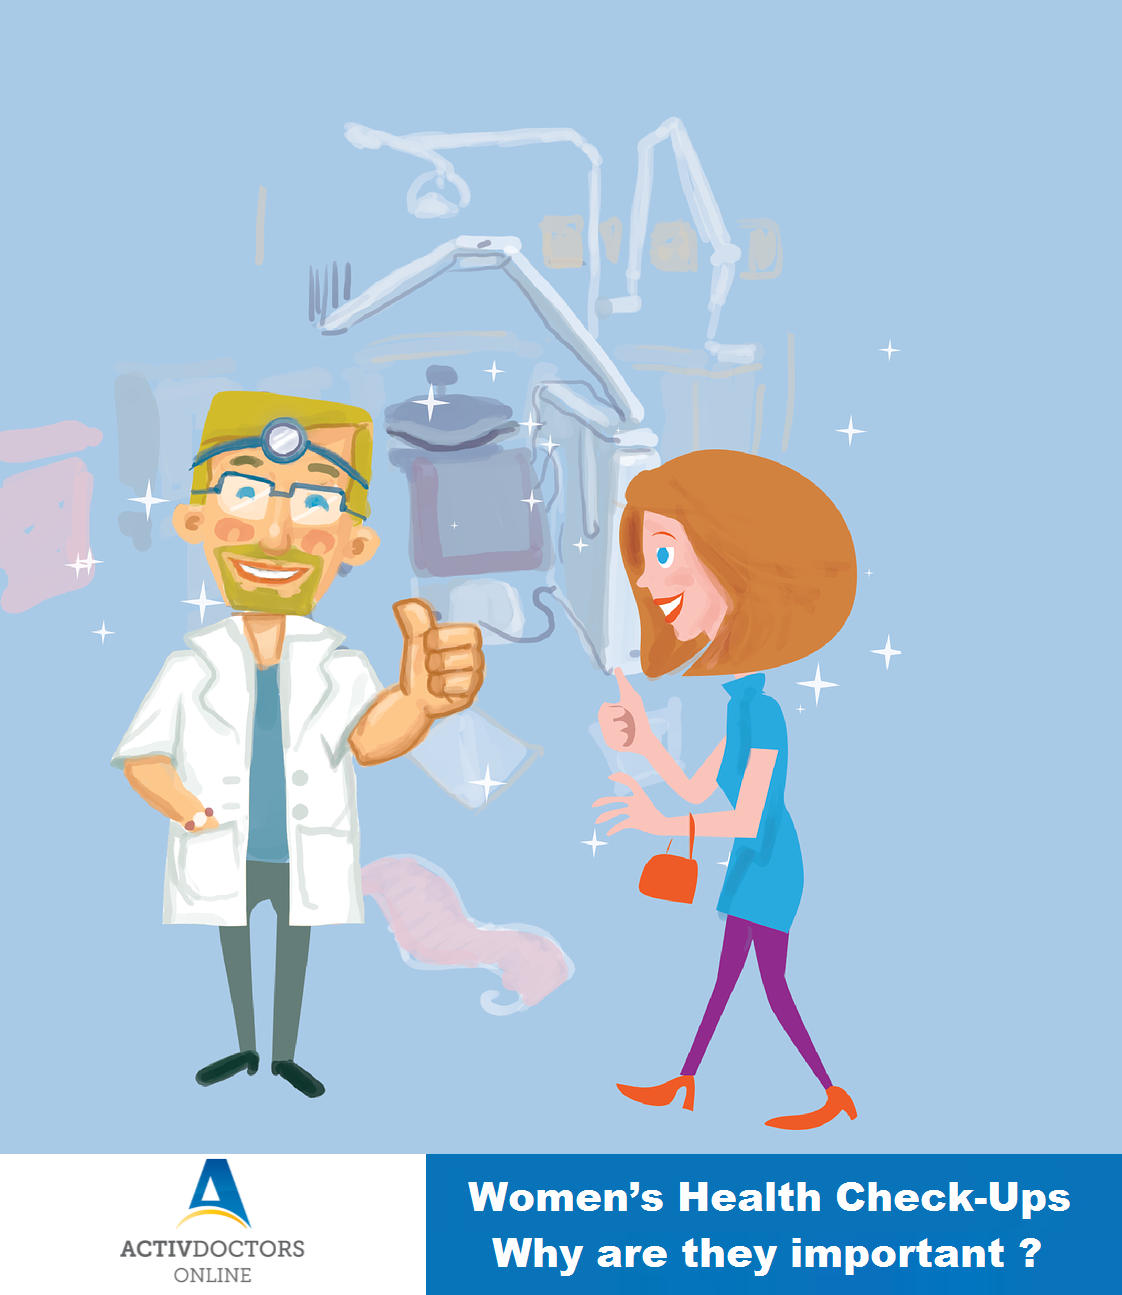 Women's Health Check-Ups – Why are they important?